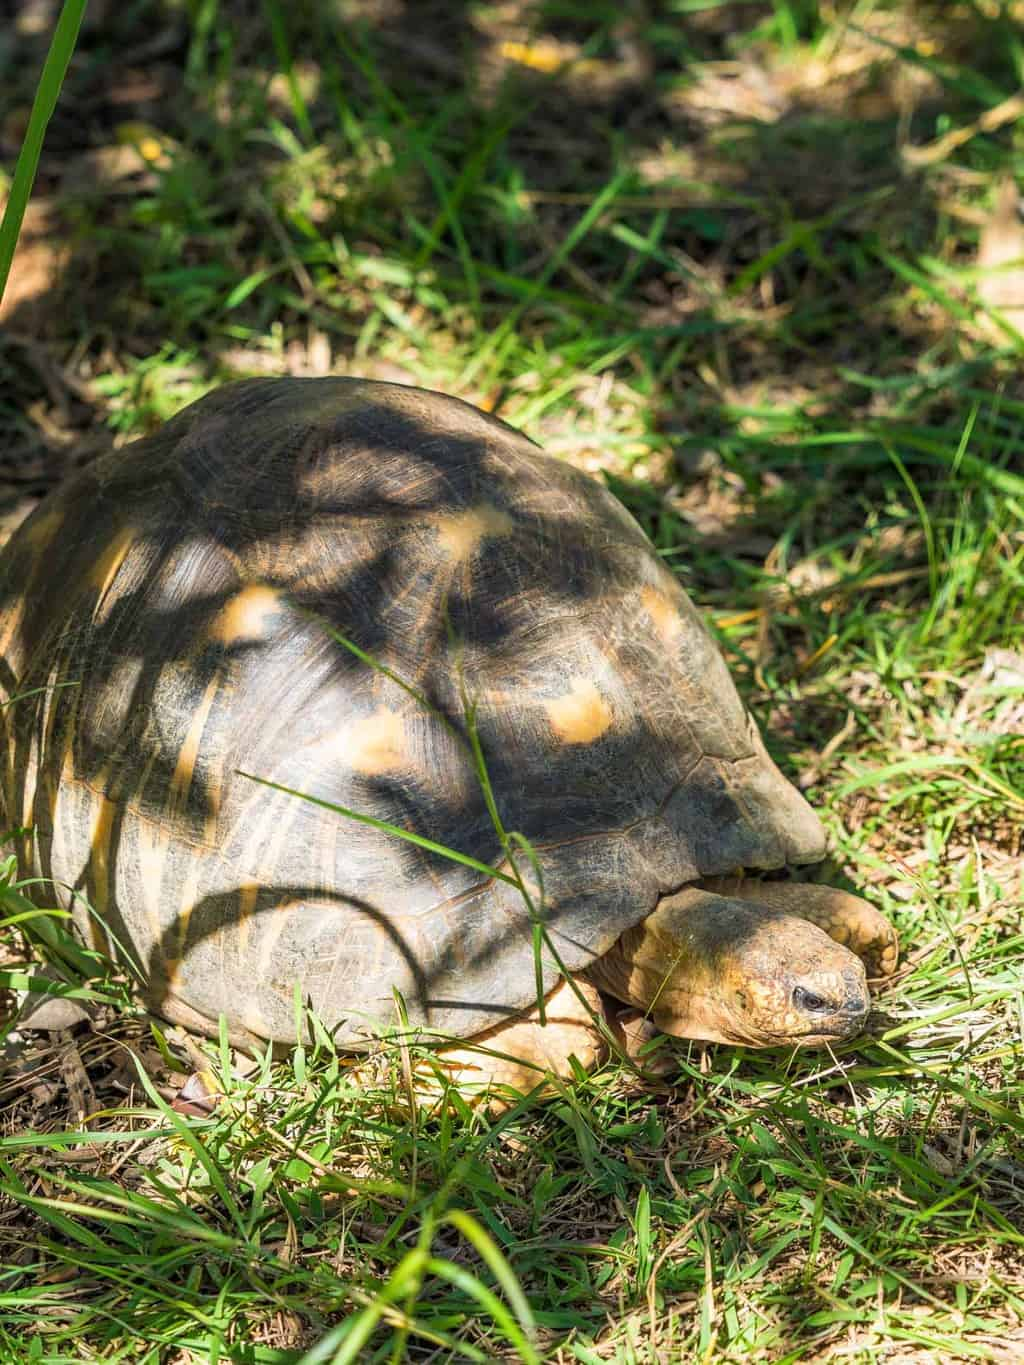 One of many Radiated Tortoise freeley walking around the park, the Radiated tortoise is Critically Endangered in Madagascar